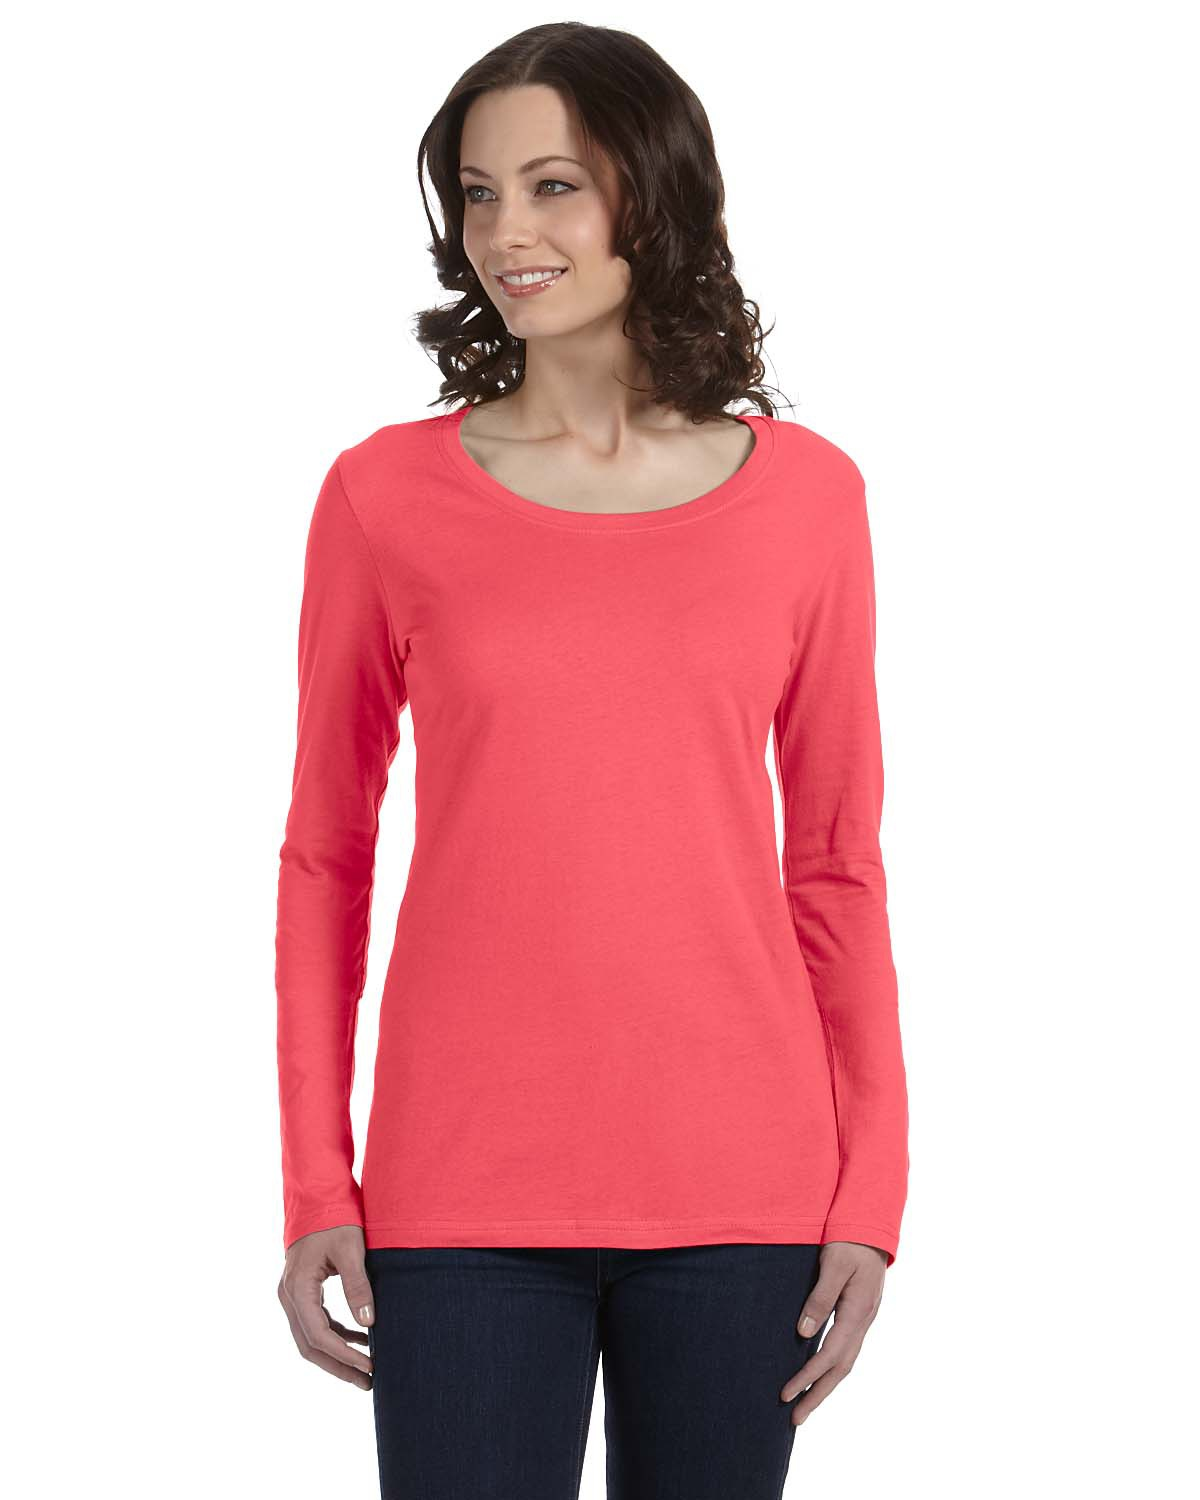 Ladies' Featherweight Long-Sleeve Scoop T-Shirt